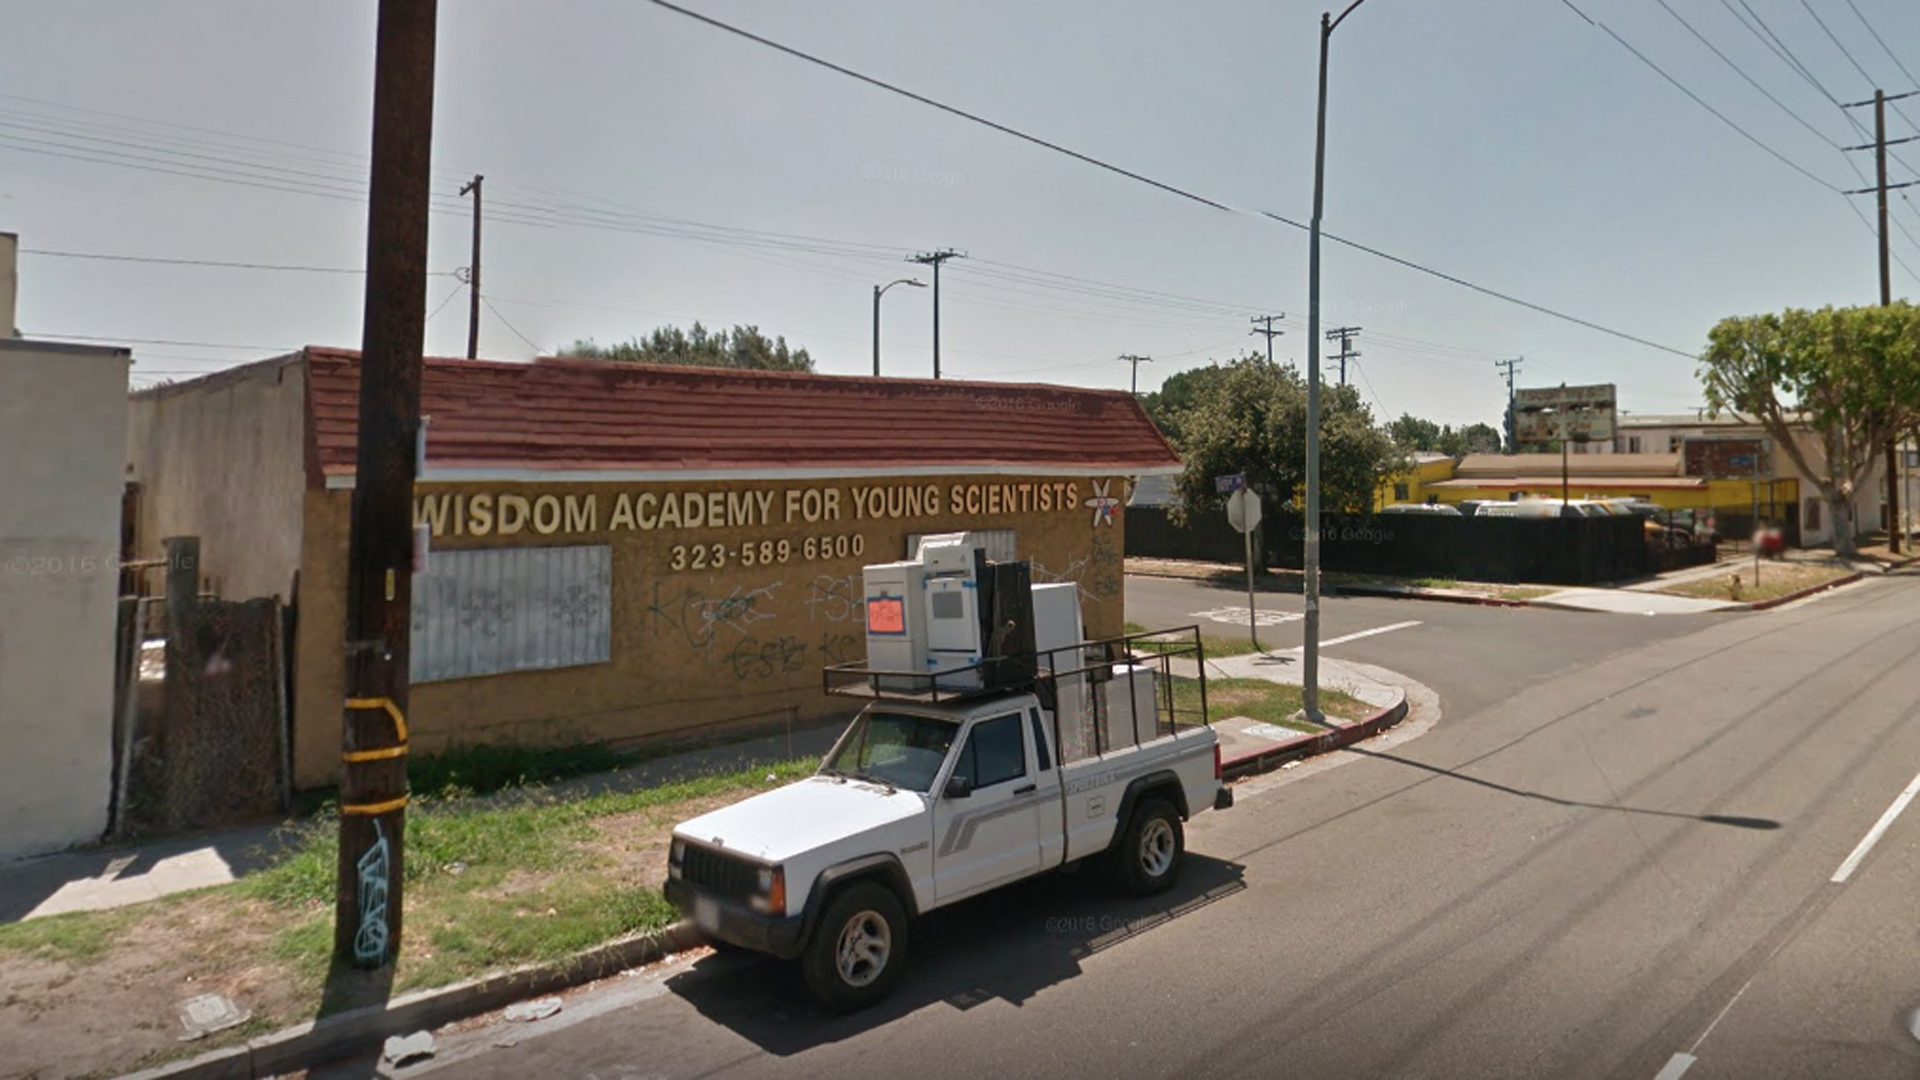 The Wisdom Academy for Young Scientists in South L.A. appears in an image from Google Maps.